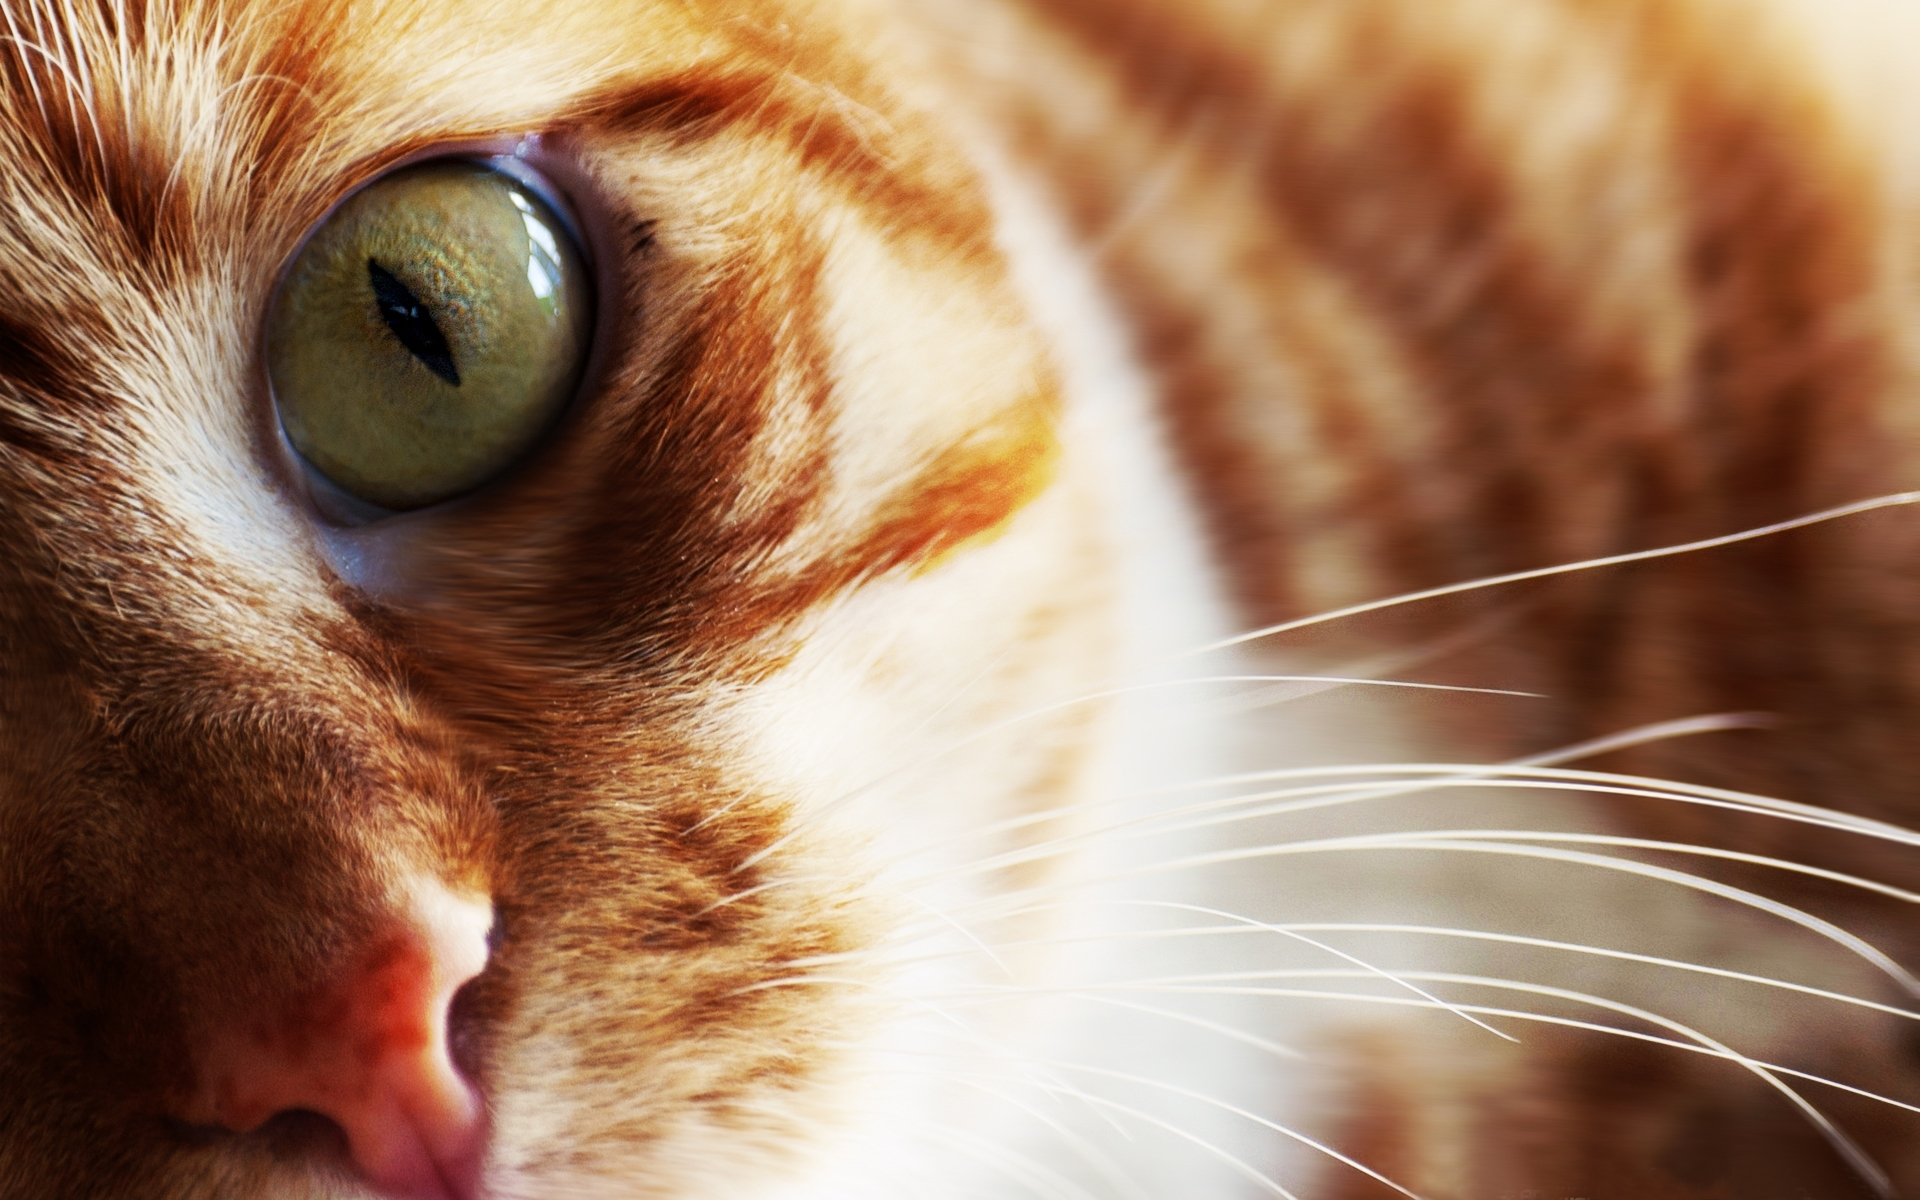 49584 download wallpaper Animals, Cats screensavers and pictures for free